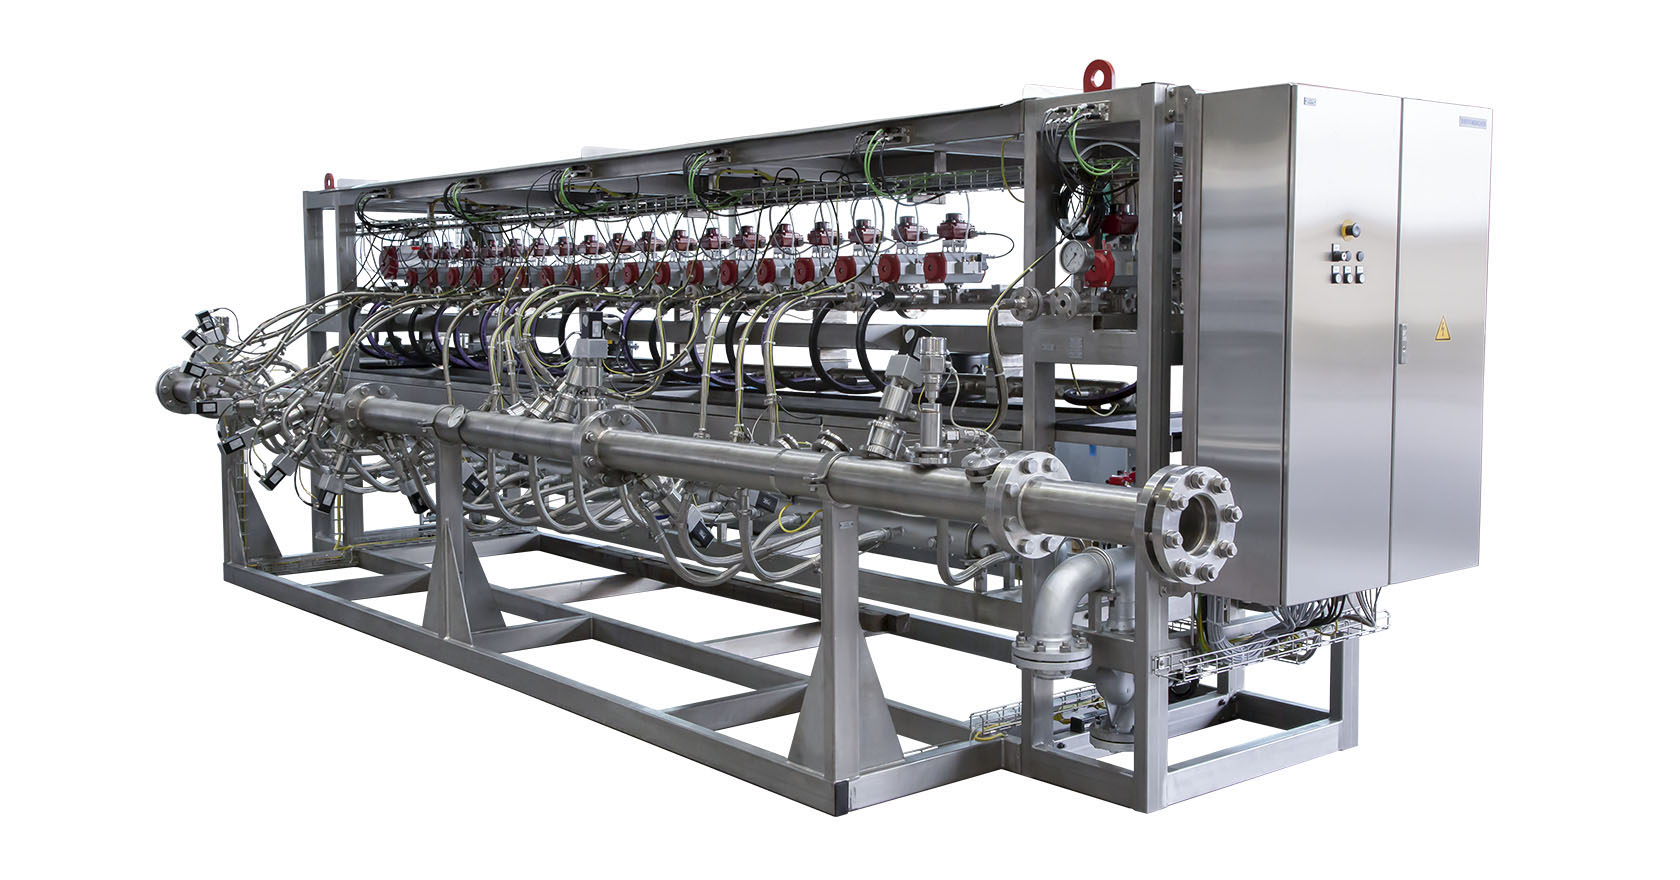 FINSA to install DIEFFENBACHER glue-saving technology in two production lines